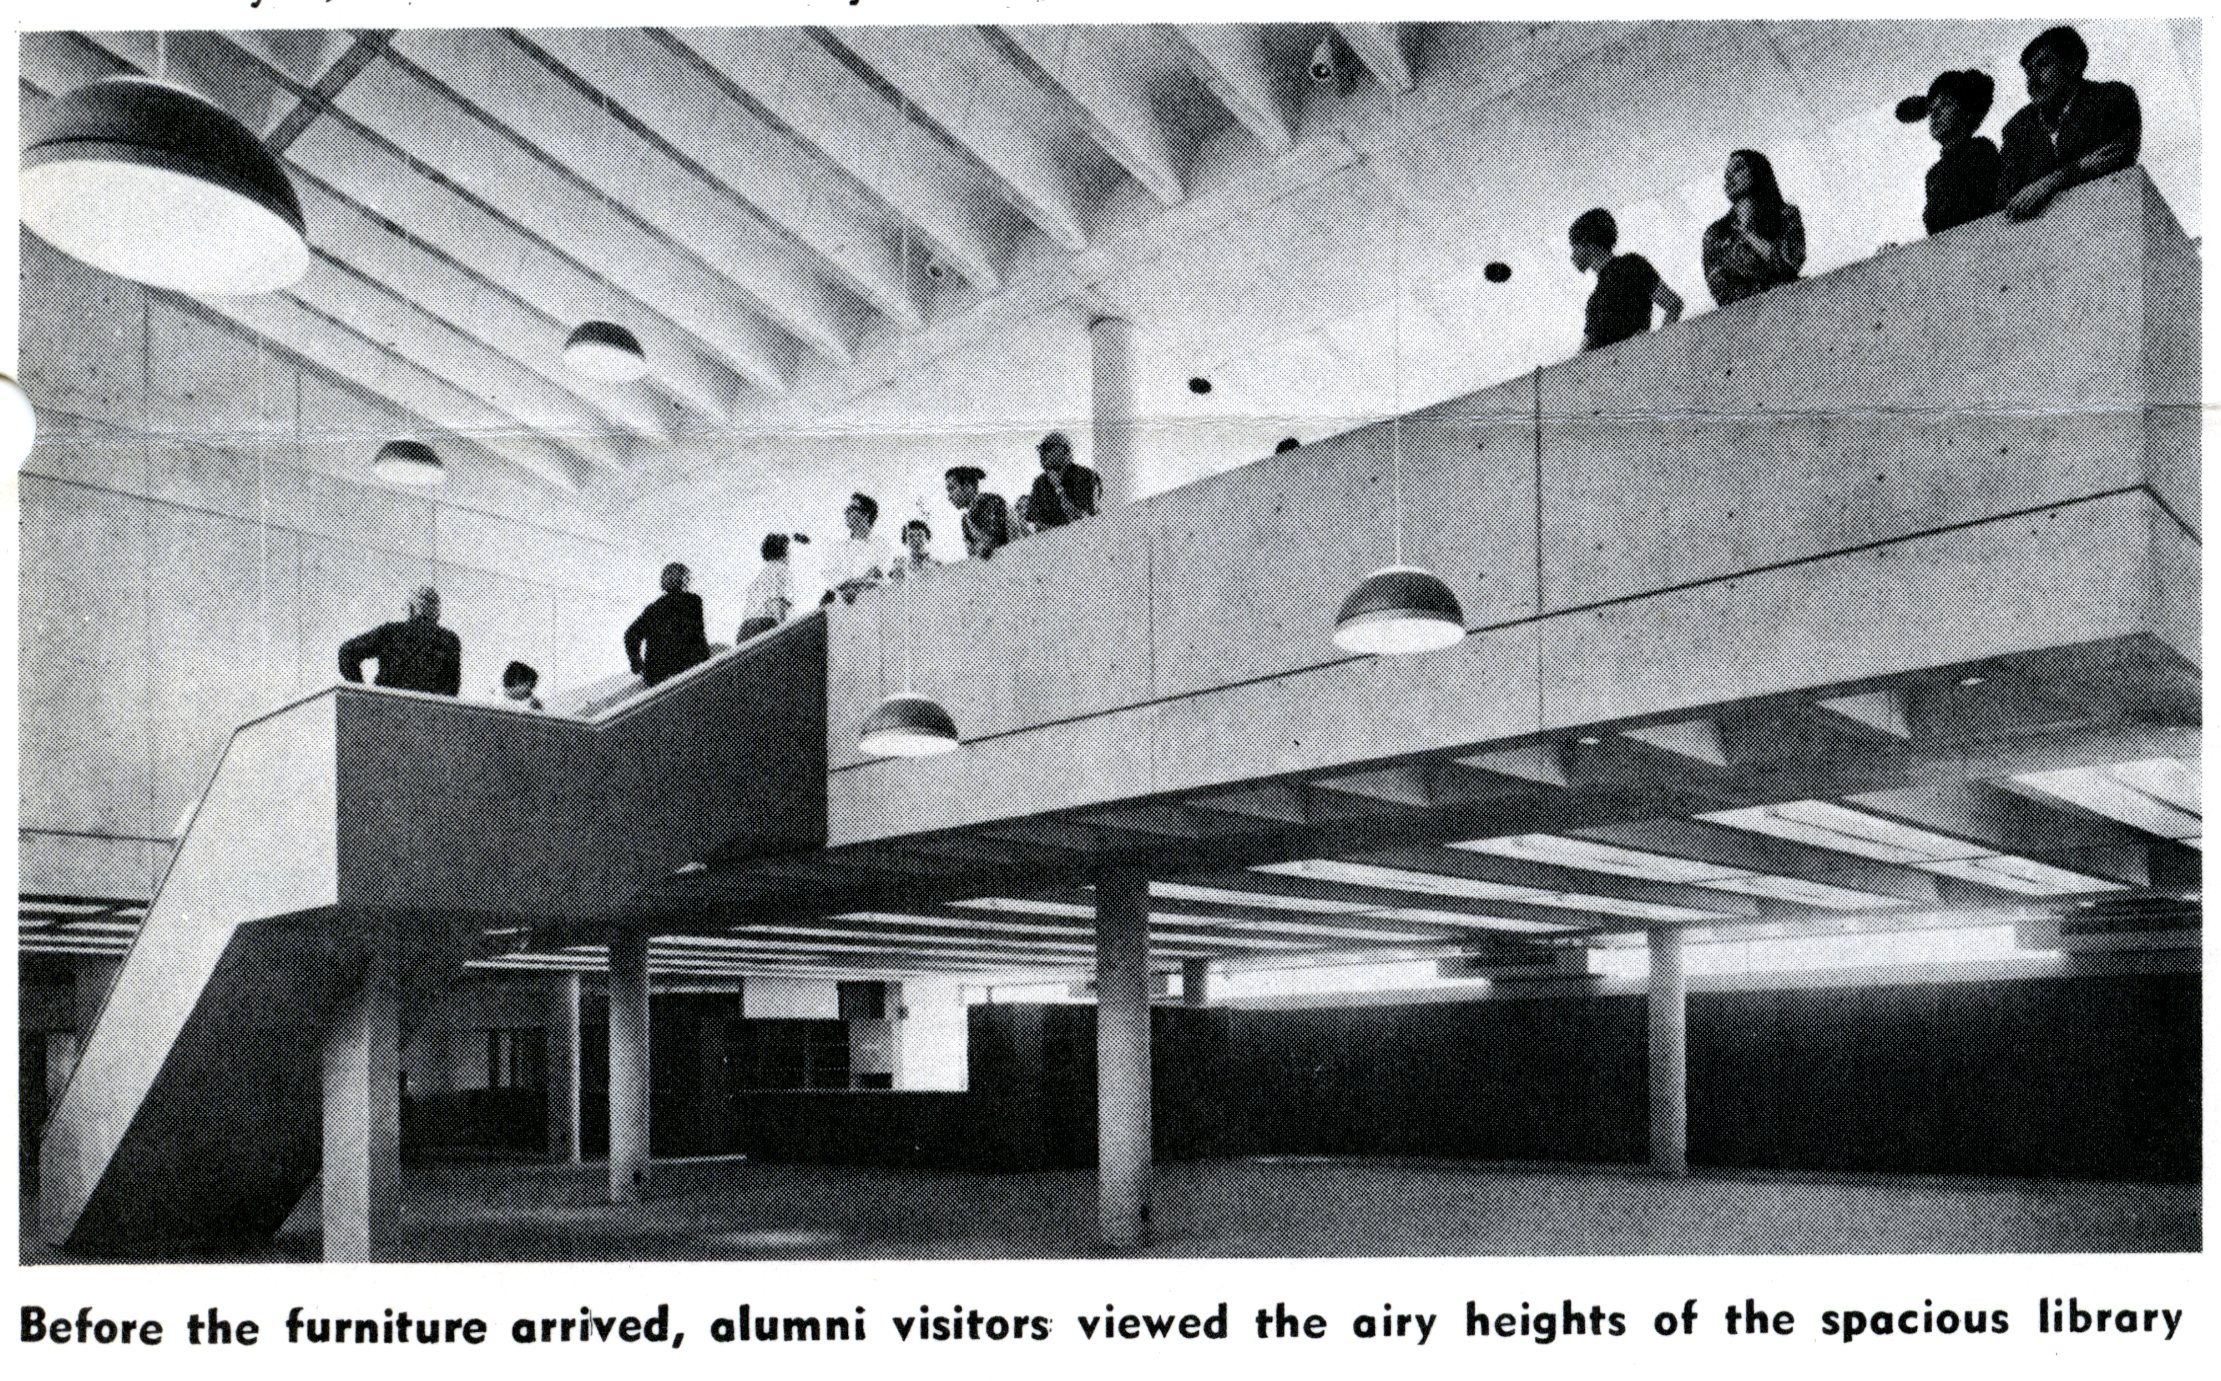 Alumni on the Meyer mezzanine